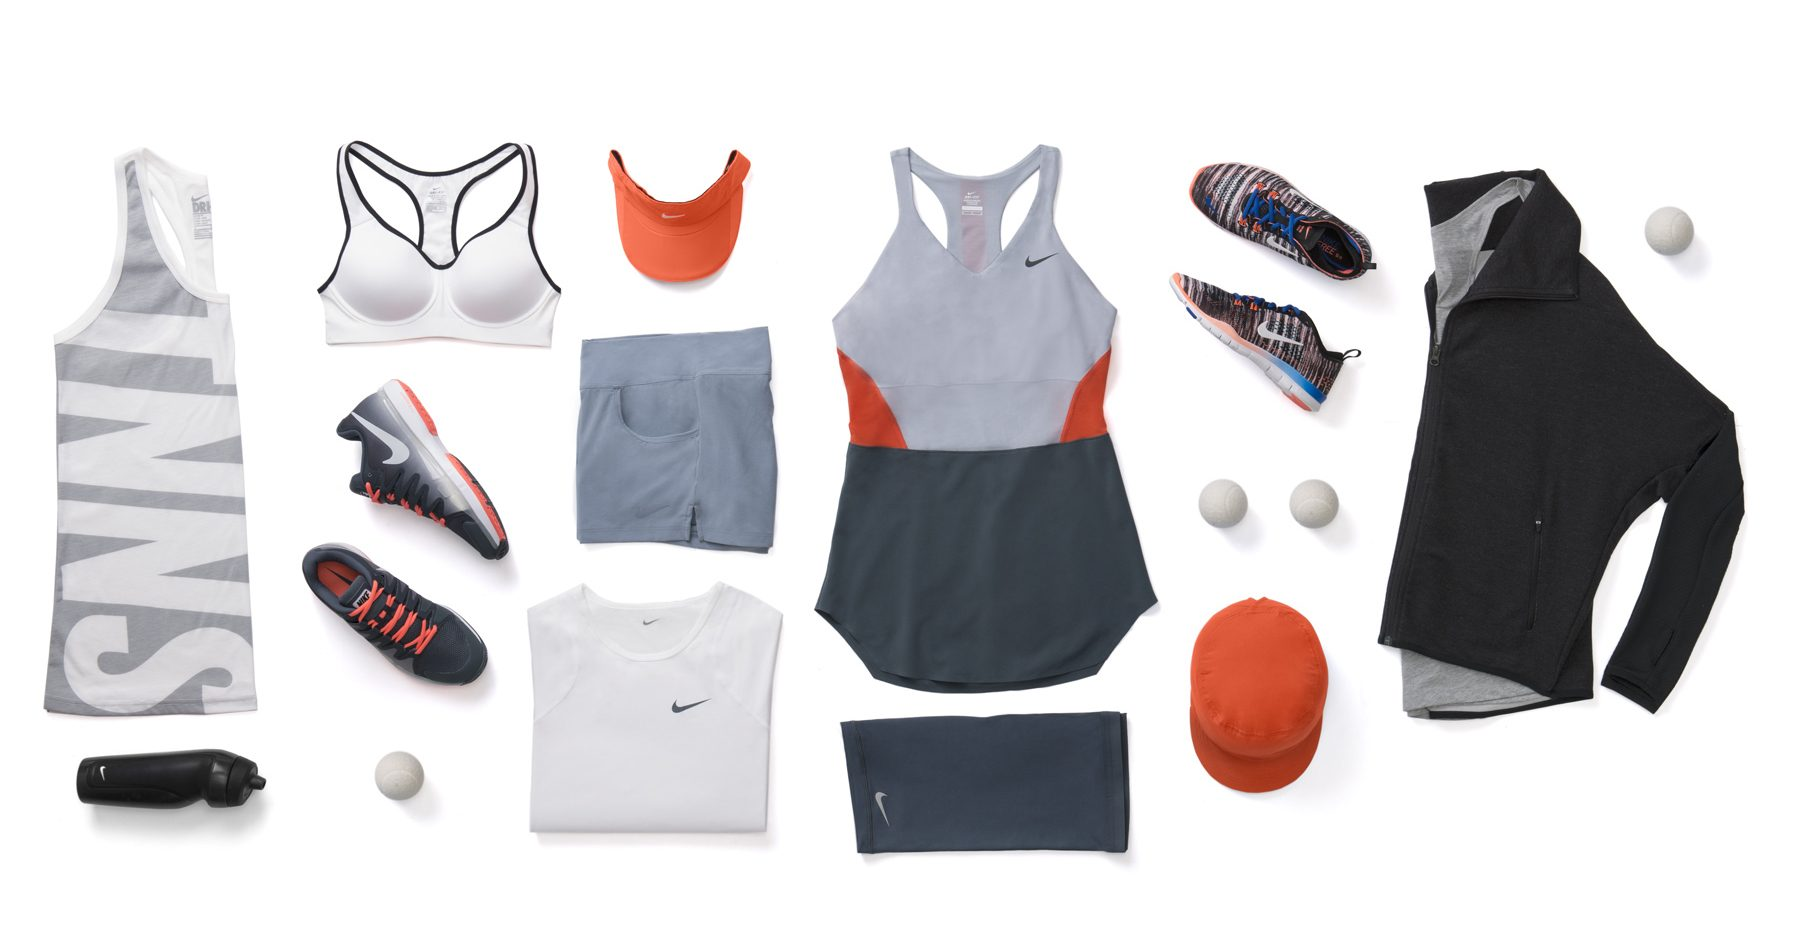 Top 5 Looks from Nike Fall 2 Collection for Women